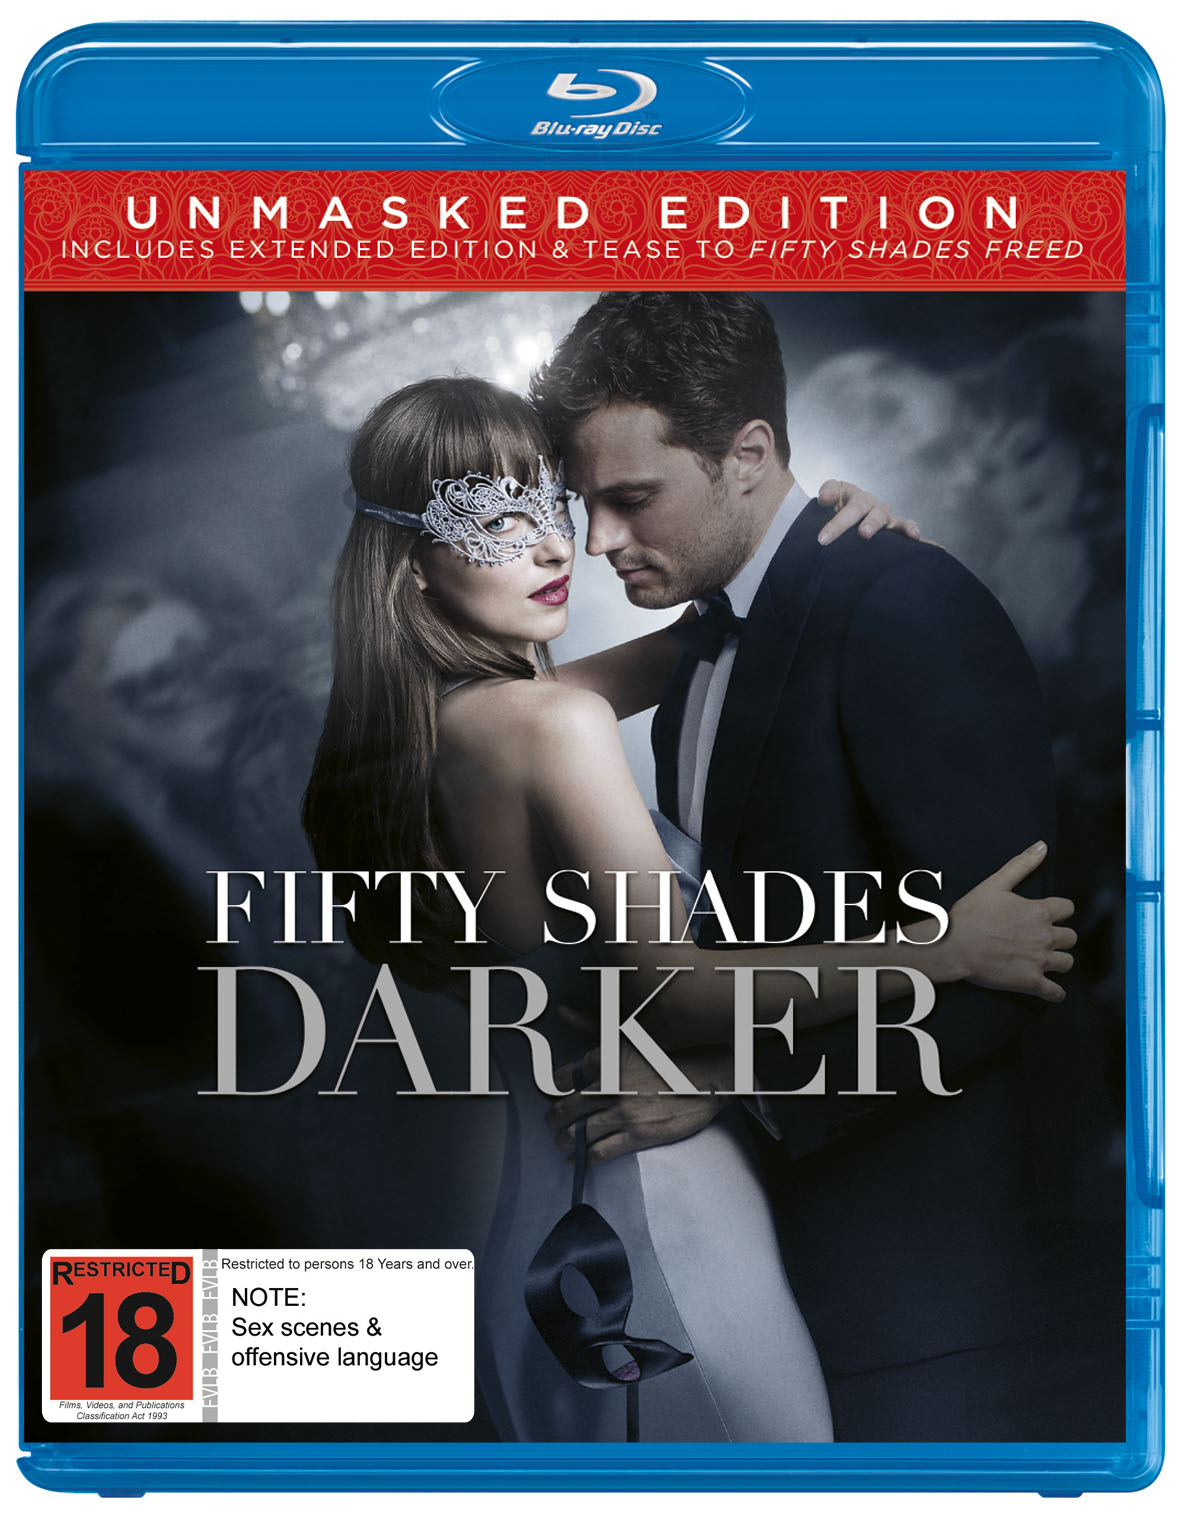 Fifty Shades Darker Blu Ray In Stock Buy Now At Mighty Ape Nz